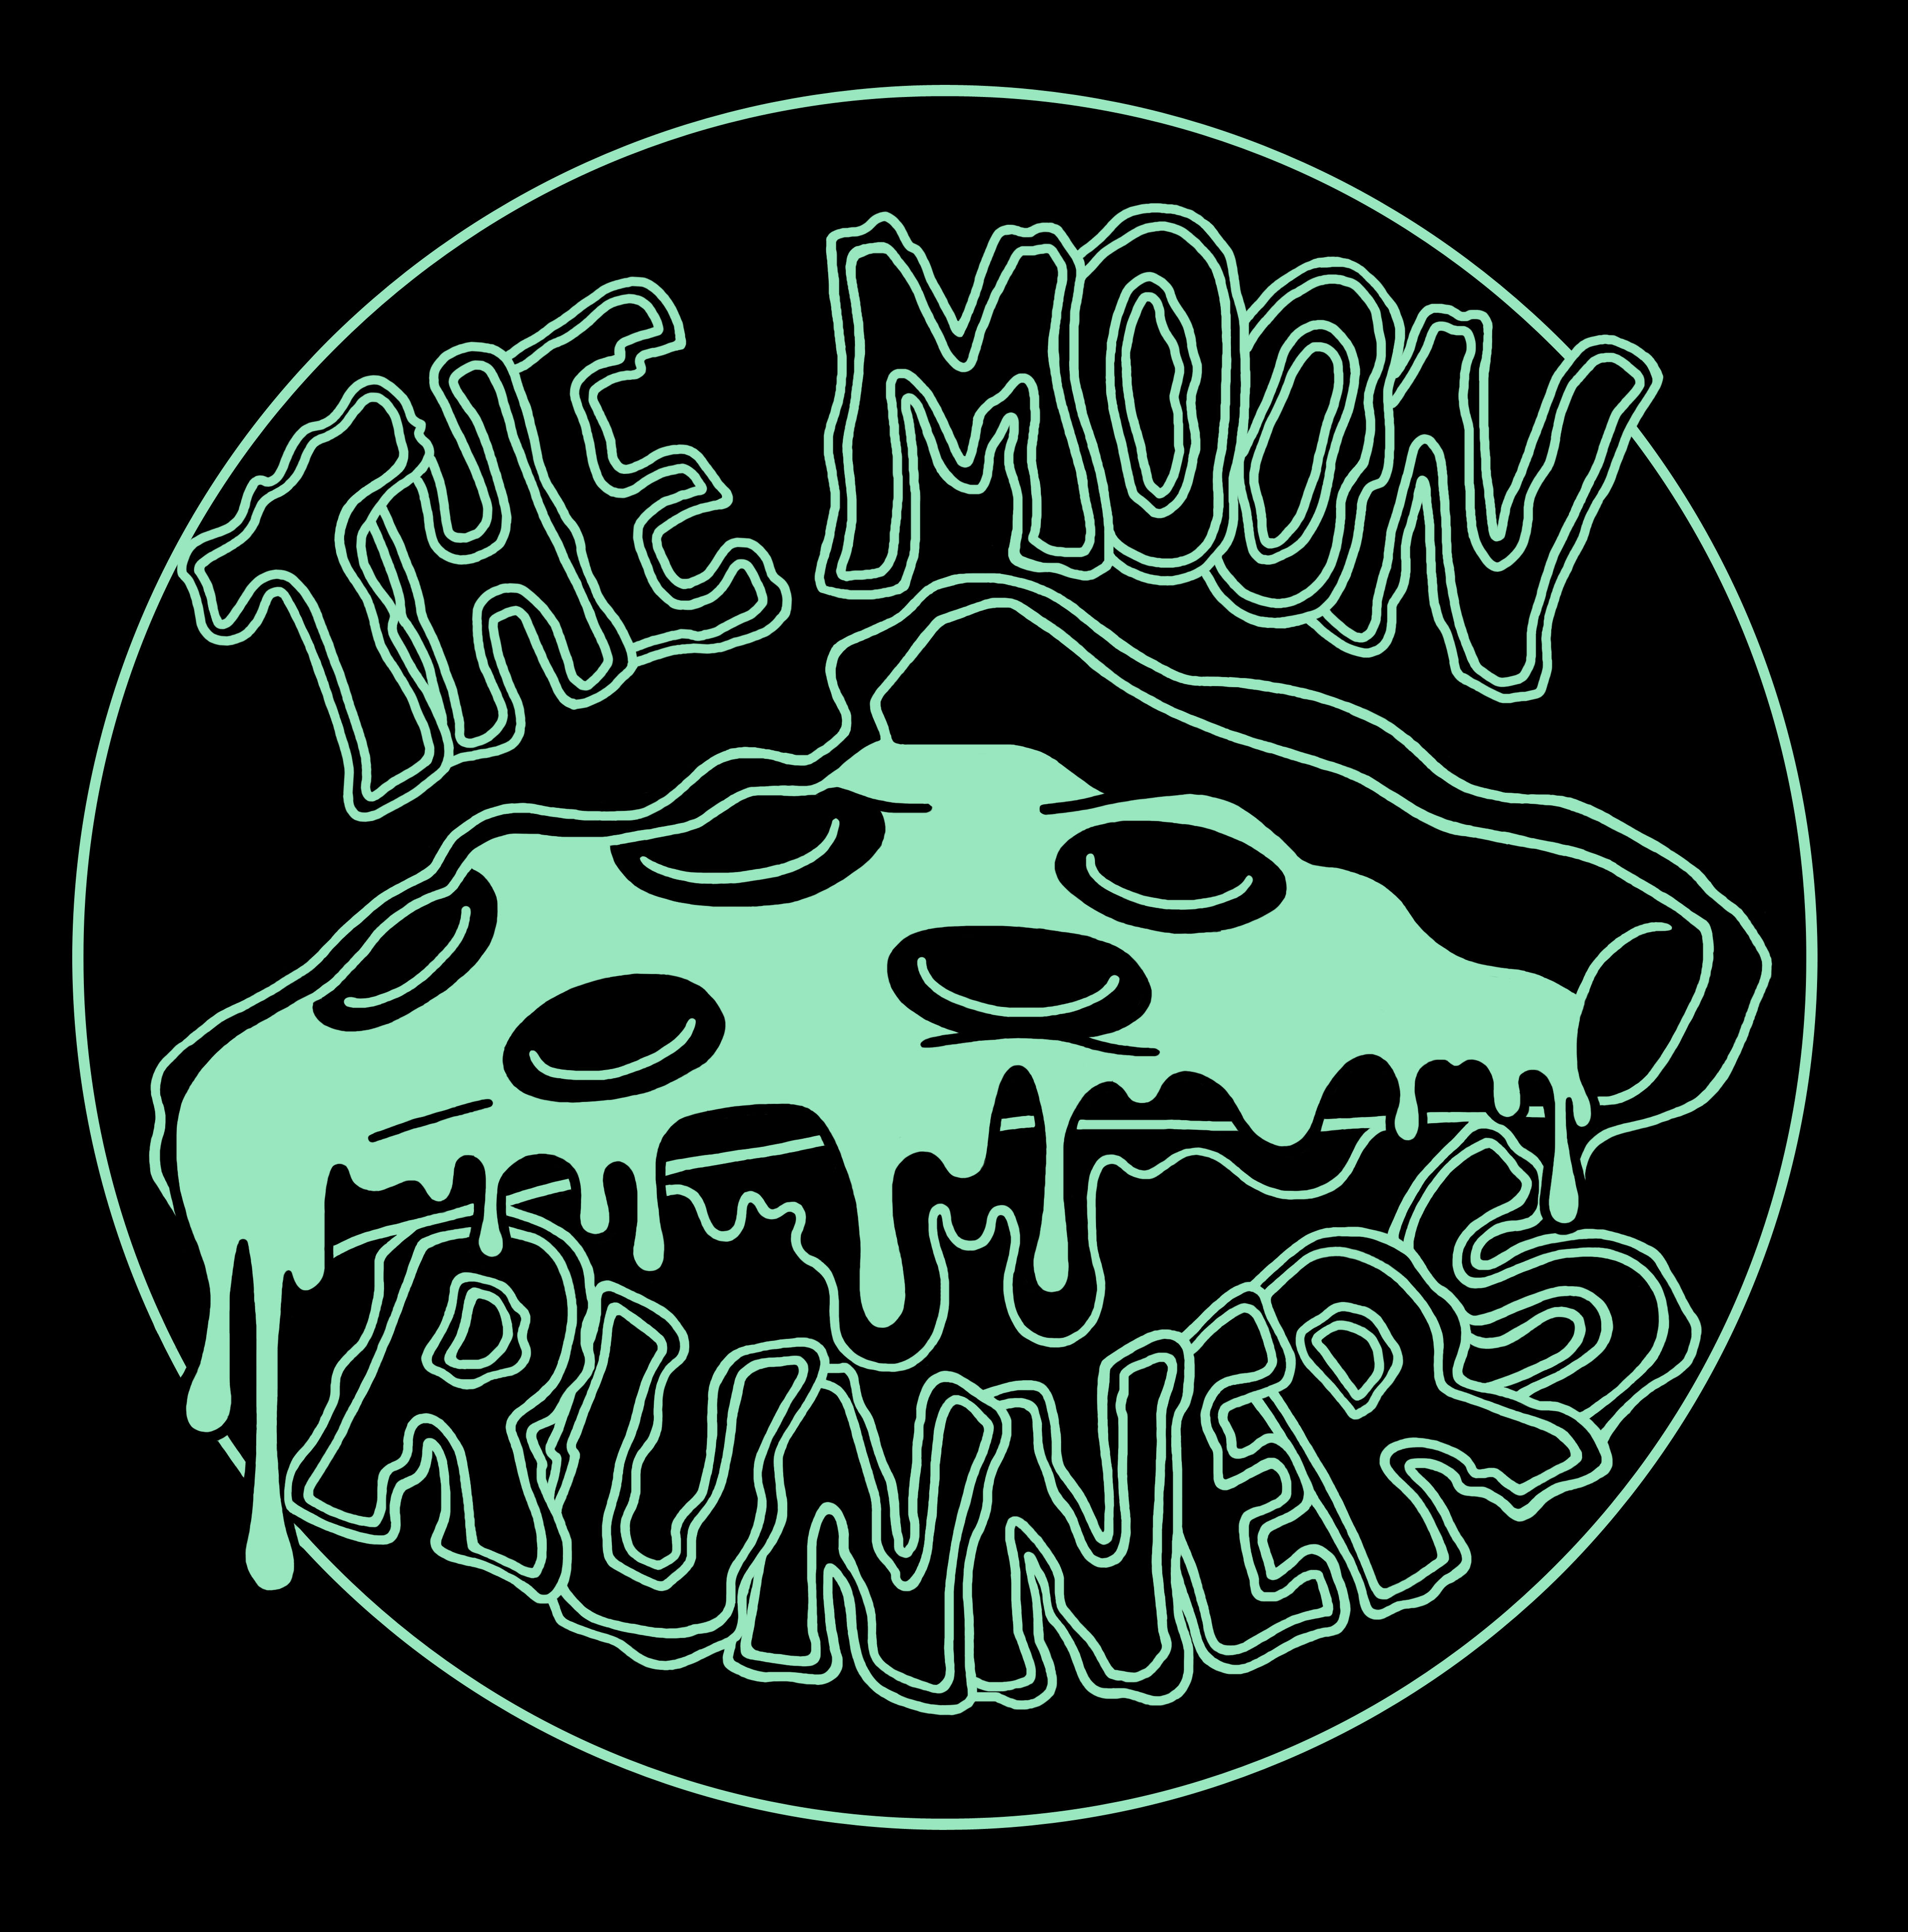 Moon Runners Pizza Shirt Design